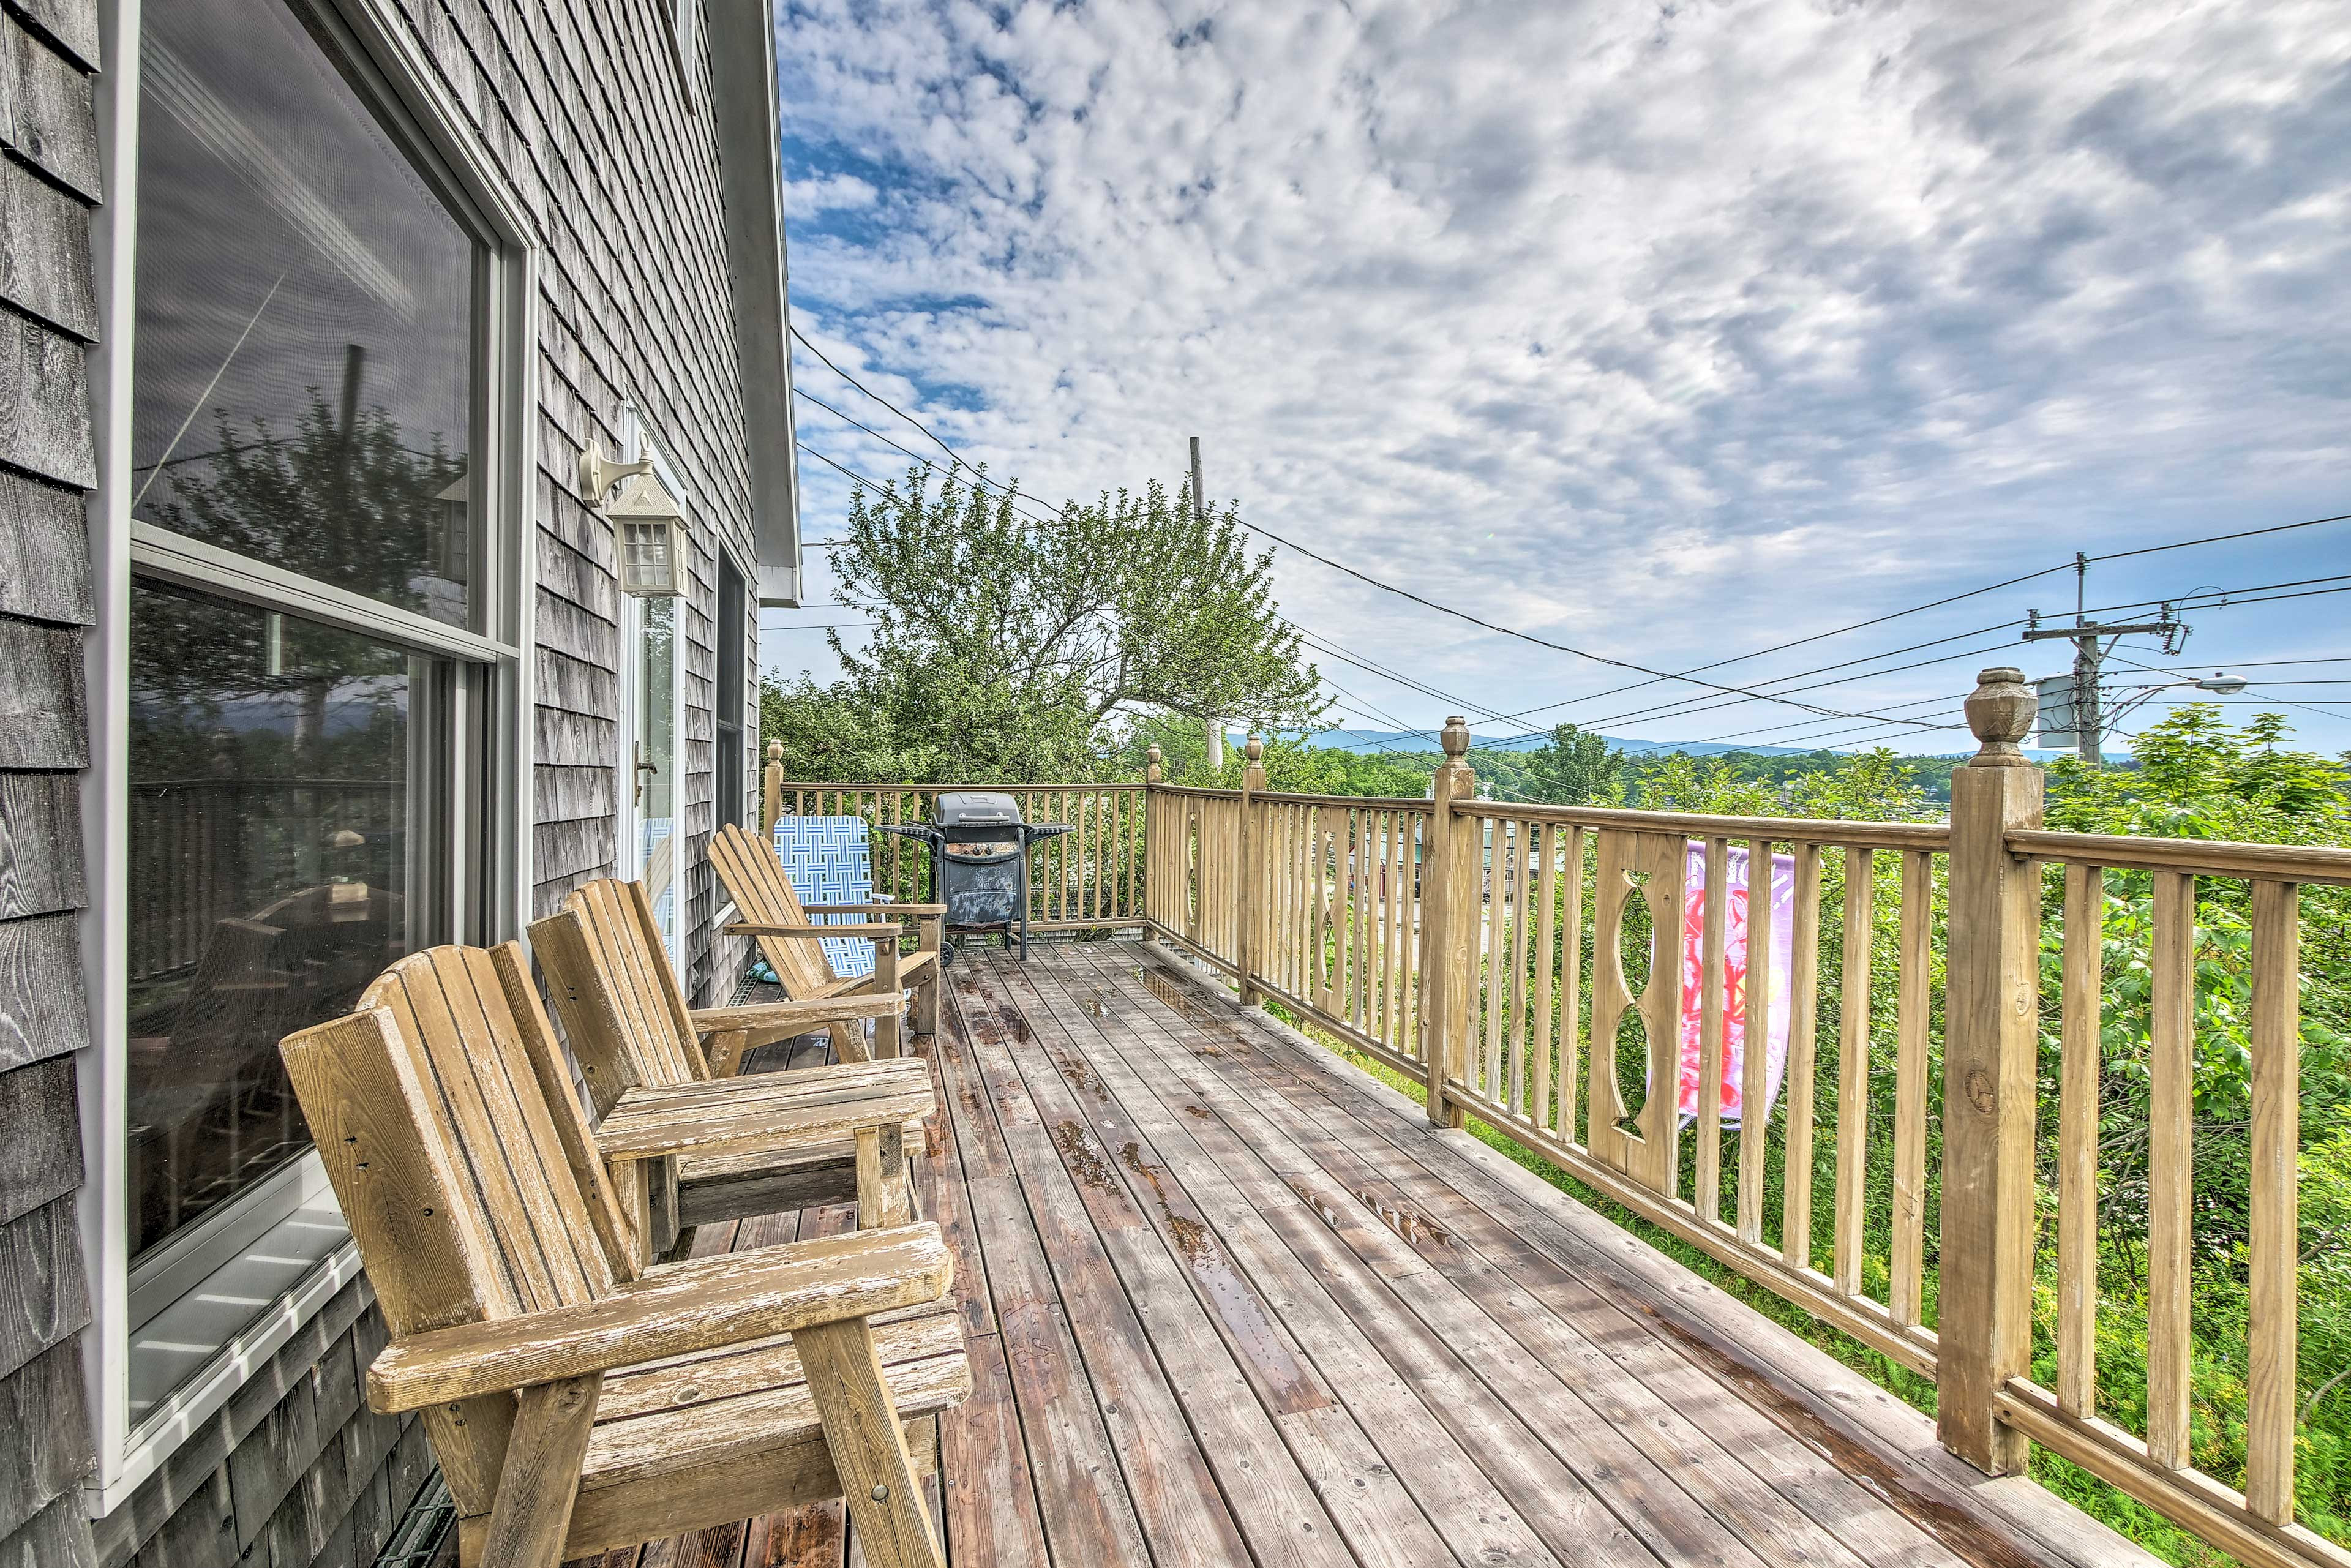 Spend time enjoying the simpler things on the deck of this vacation rental!